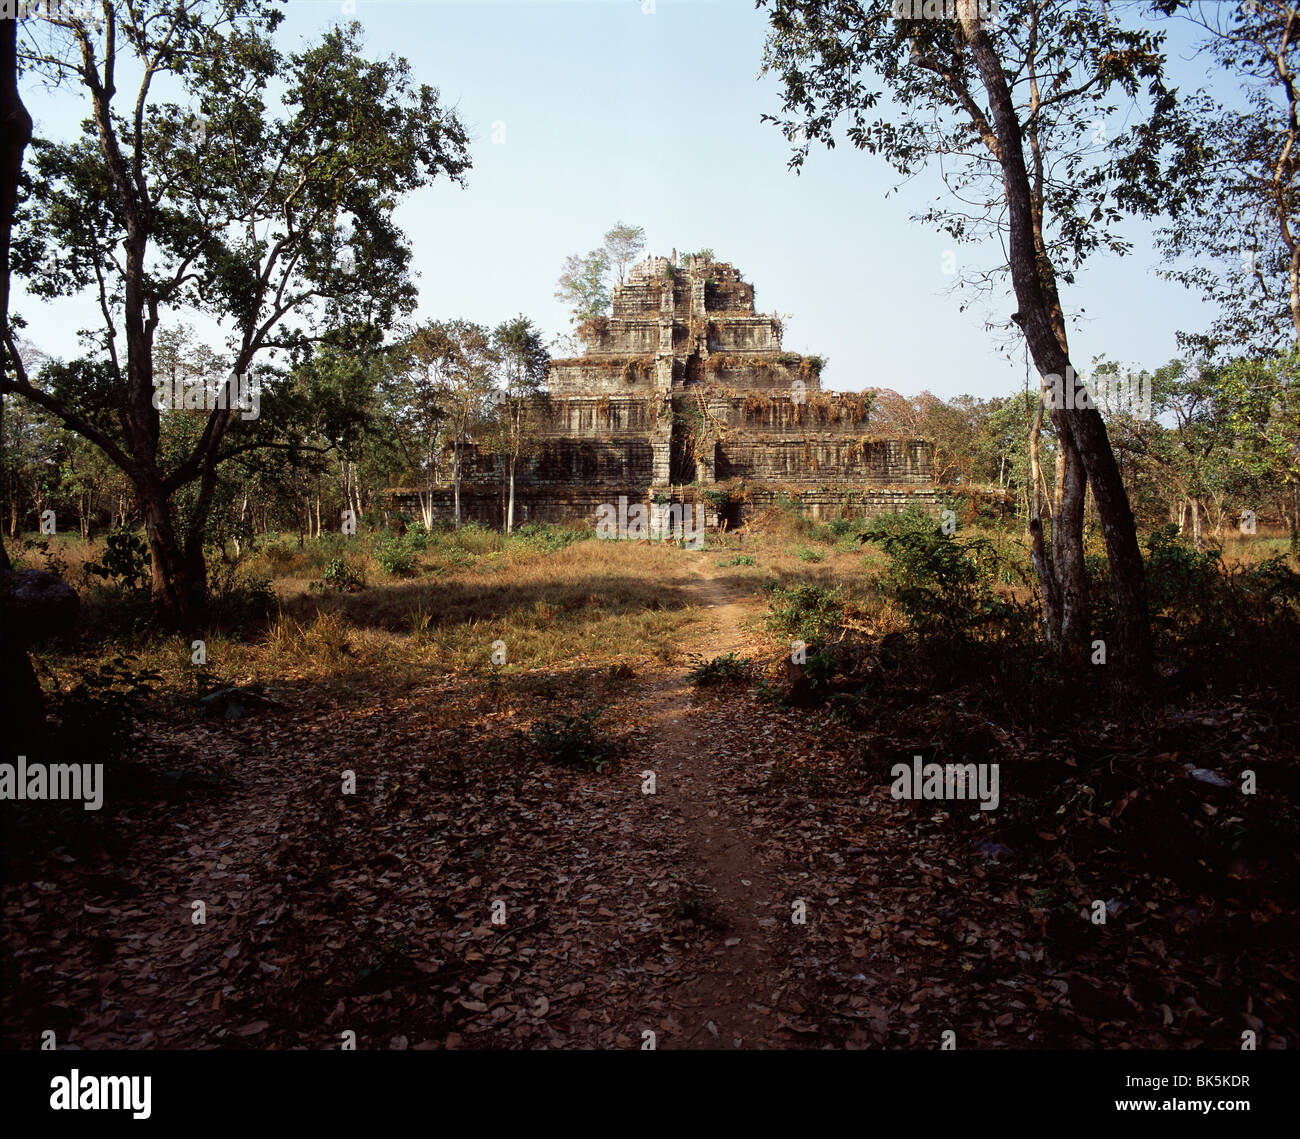 Prang Prasathom, dating from the 10th century, Koh Ker, Cambodia, Indochina, Southeast Asia, Asia Stock Photo